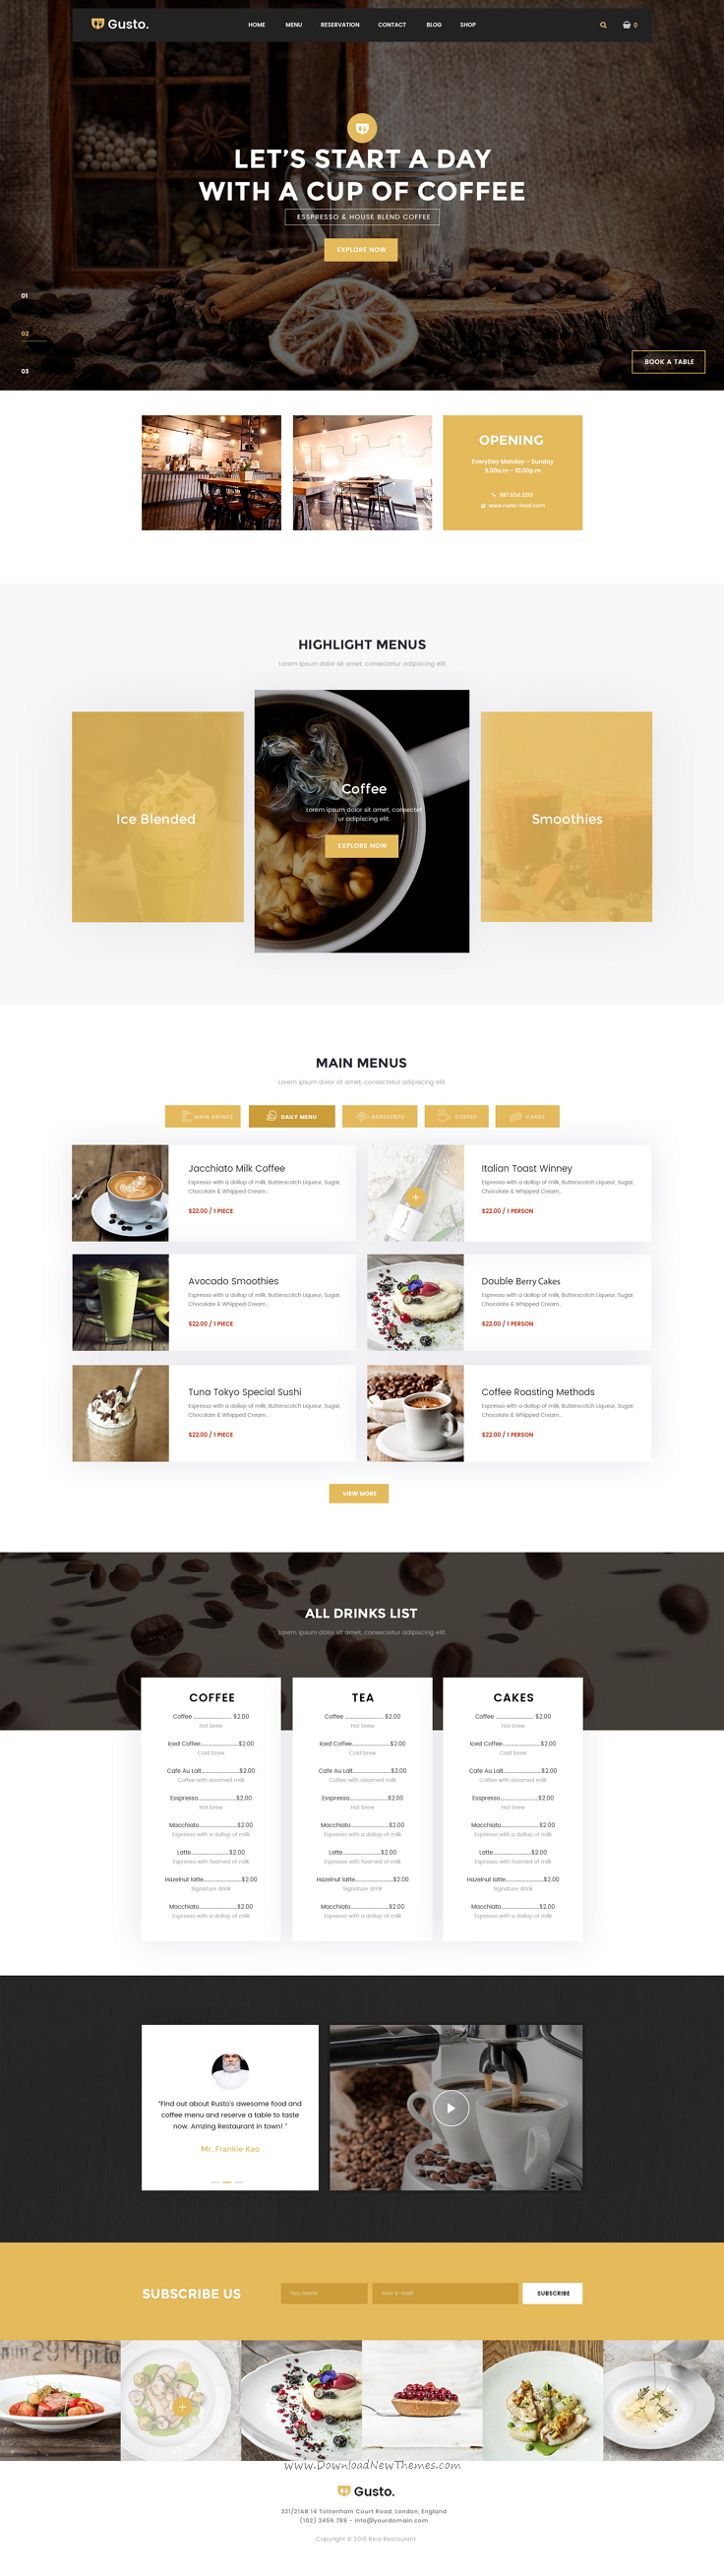 Gusto is a wonderful 9 in 1 PSD template for #coffee #café, bar or seafood restaurant #website download now➝ https://themeforest.net/item/gusto-restaurant-caf-bar-seafood-restaurant-psd-template/16815594?ref=Datasata